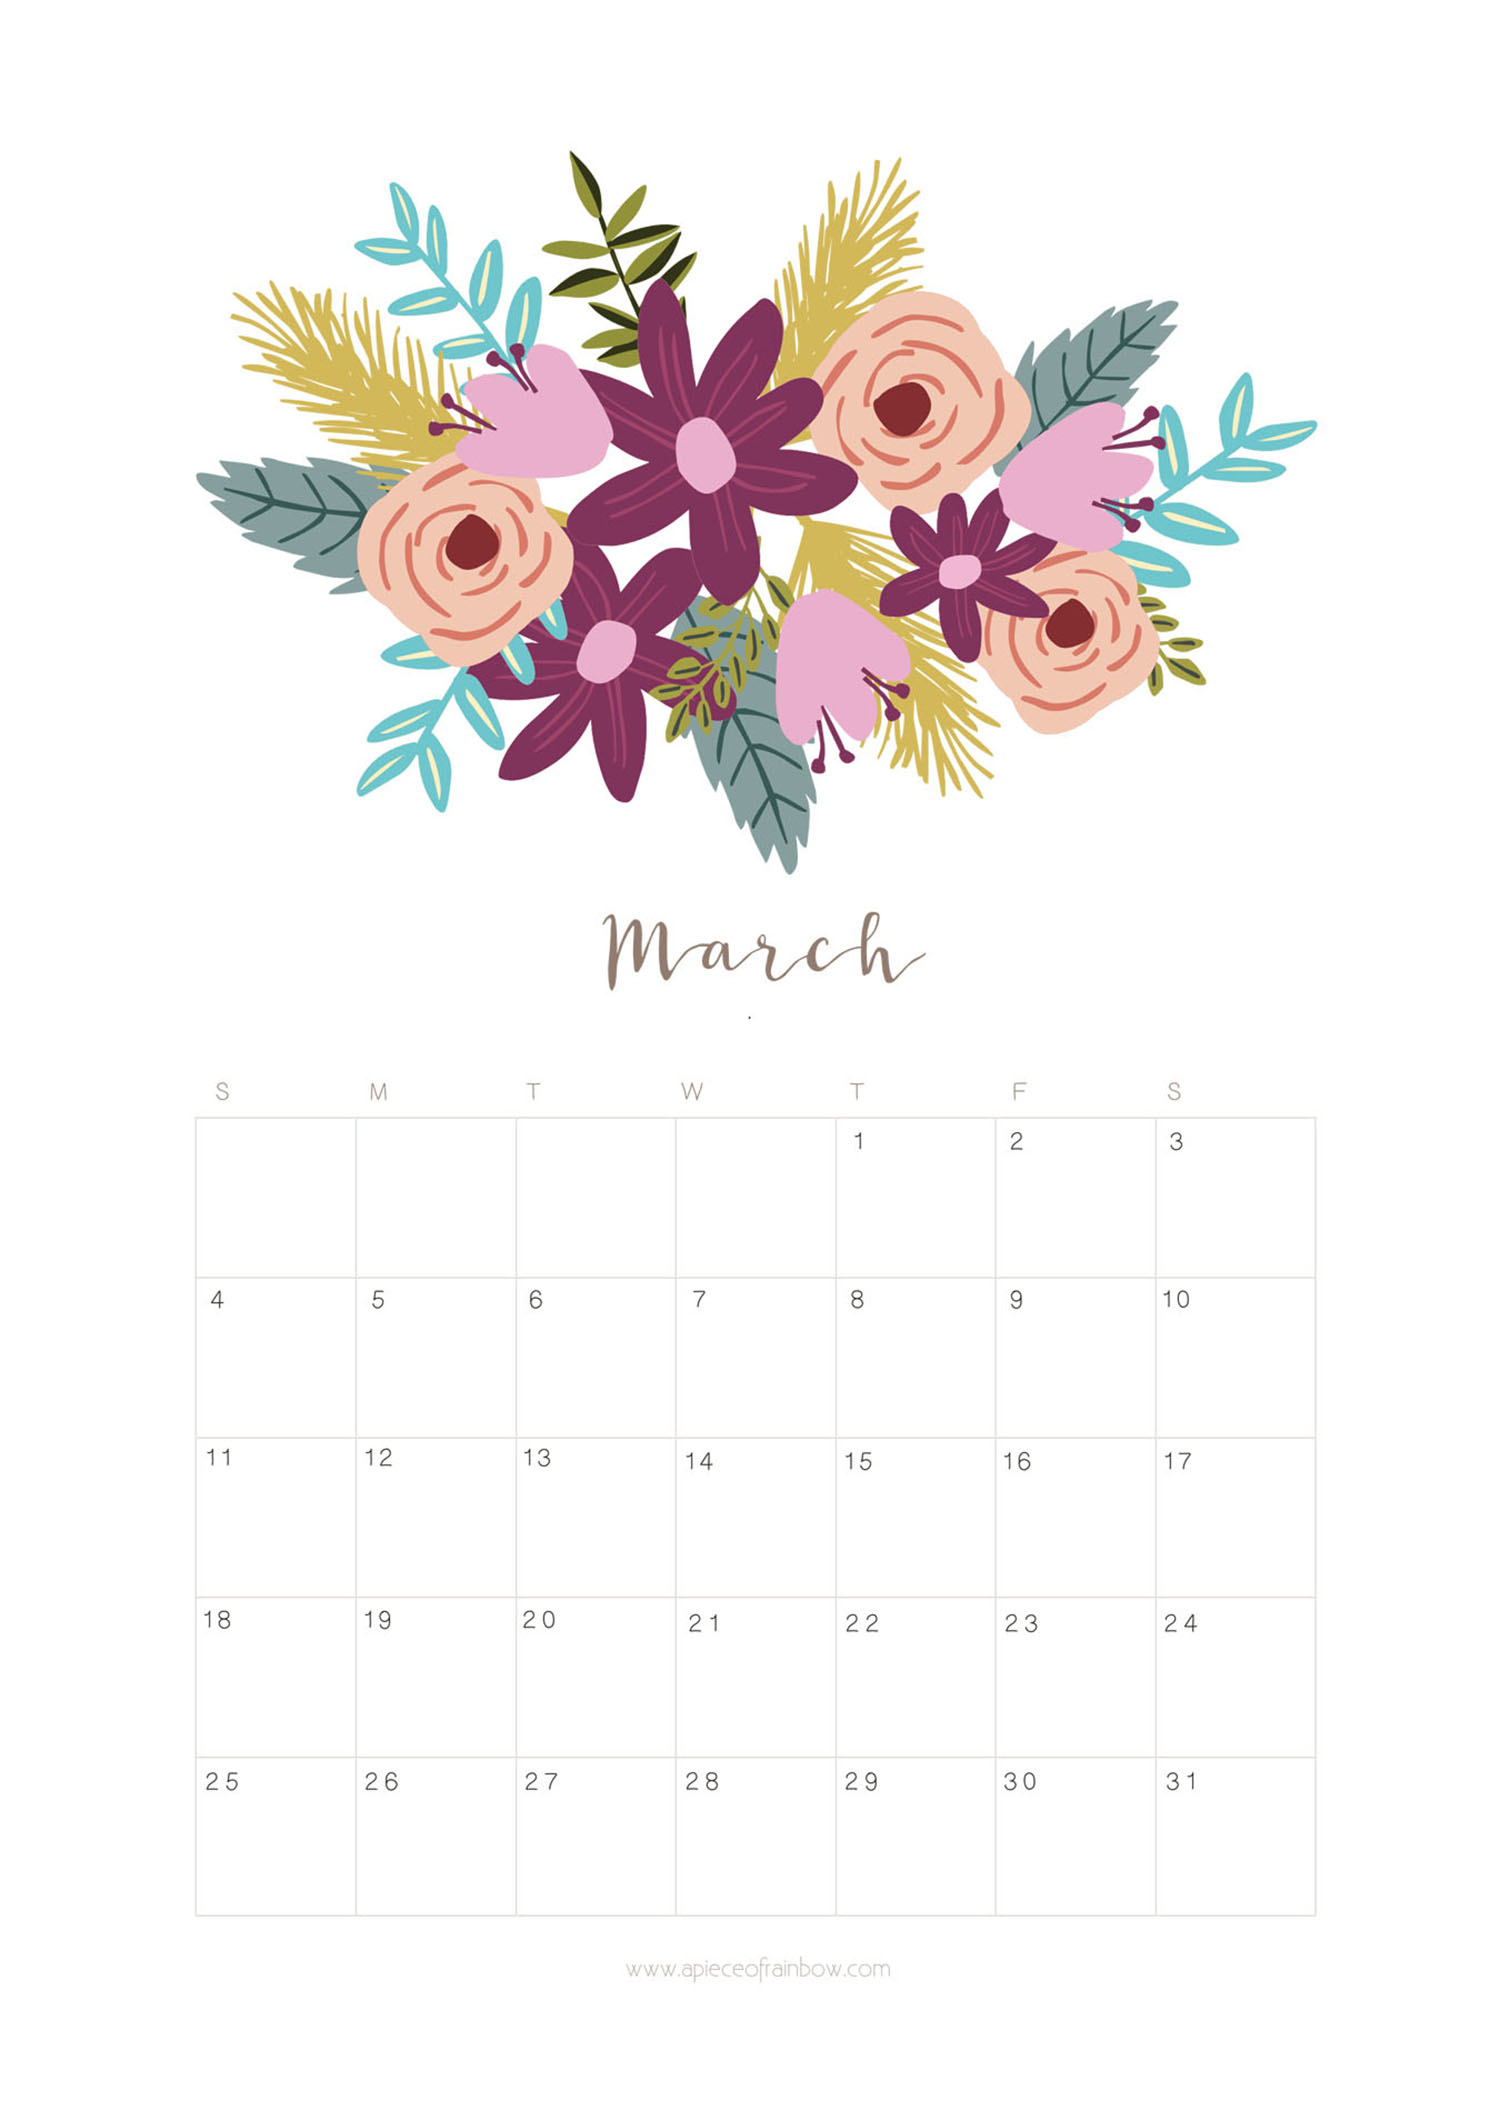 March 2018 Excel Calendar - Printable Monthly Calendar with regard to Pretty Calendar Template Printable March